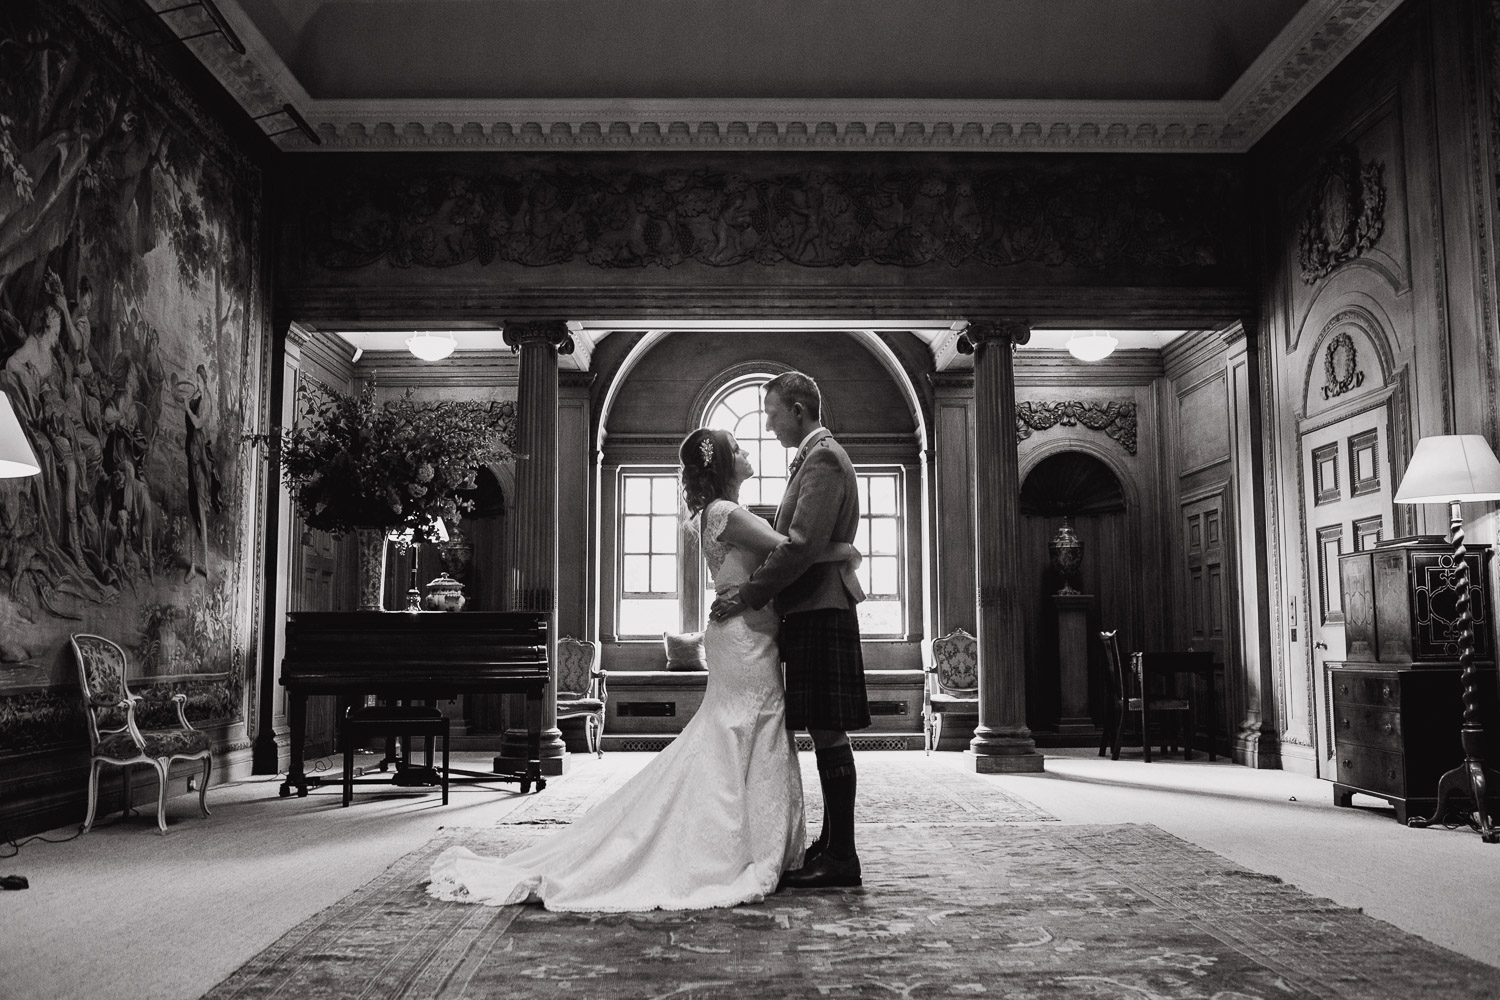 bride and groom in tapestry room at Dumfries House